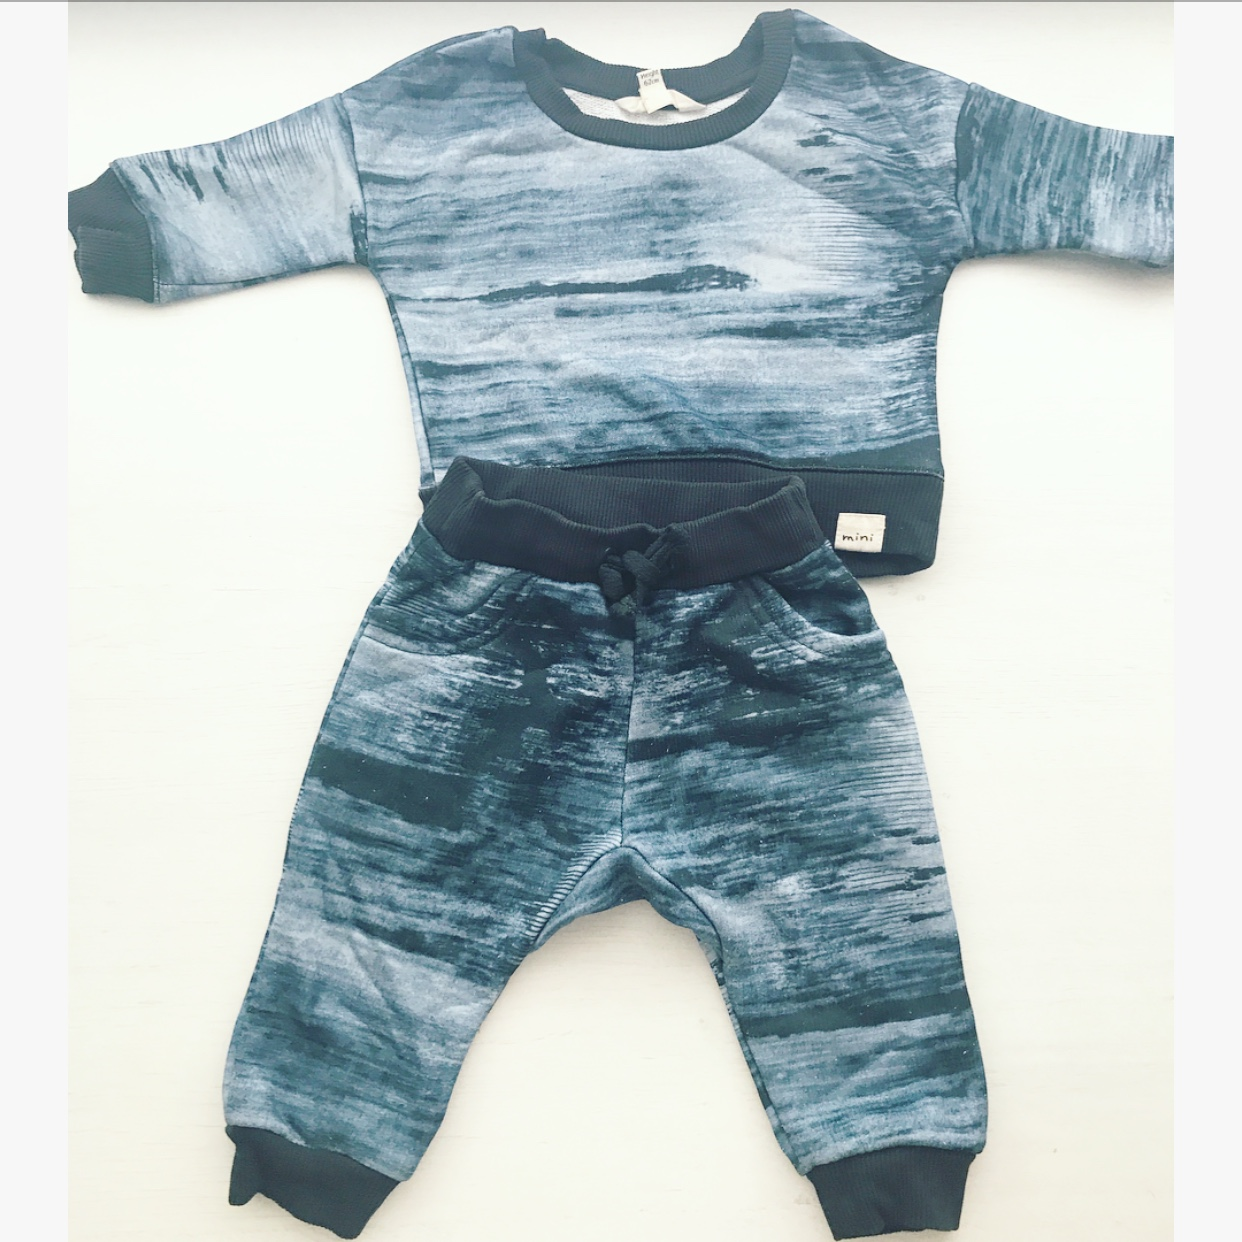 factory authentic factory outlets amazing price Baby tracksuit 0-3 Months River island Good... - Depop